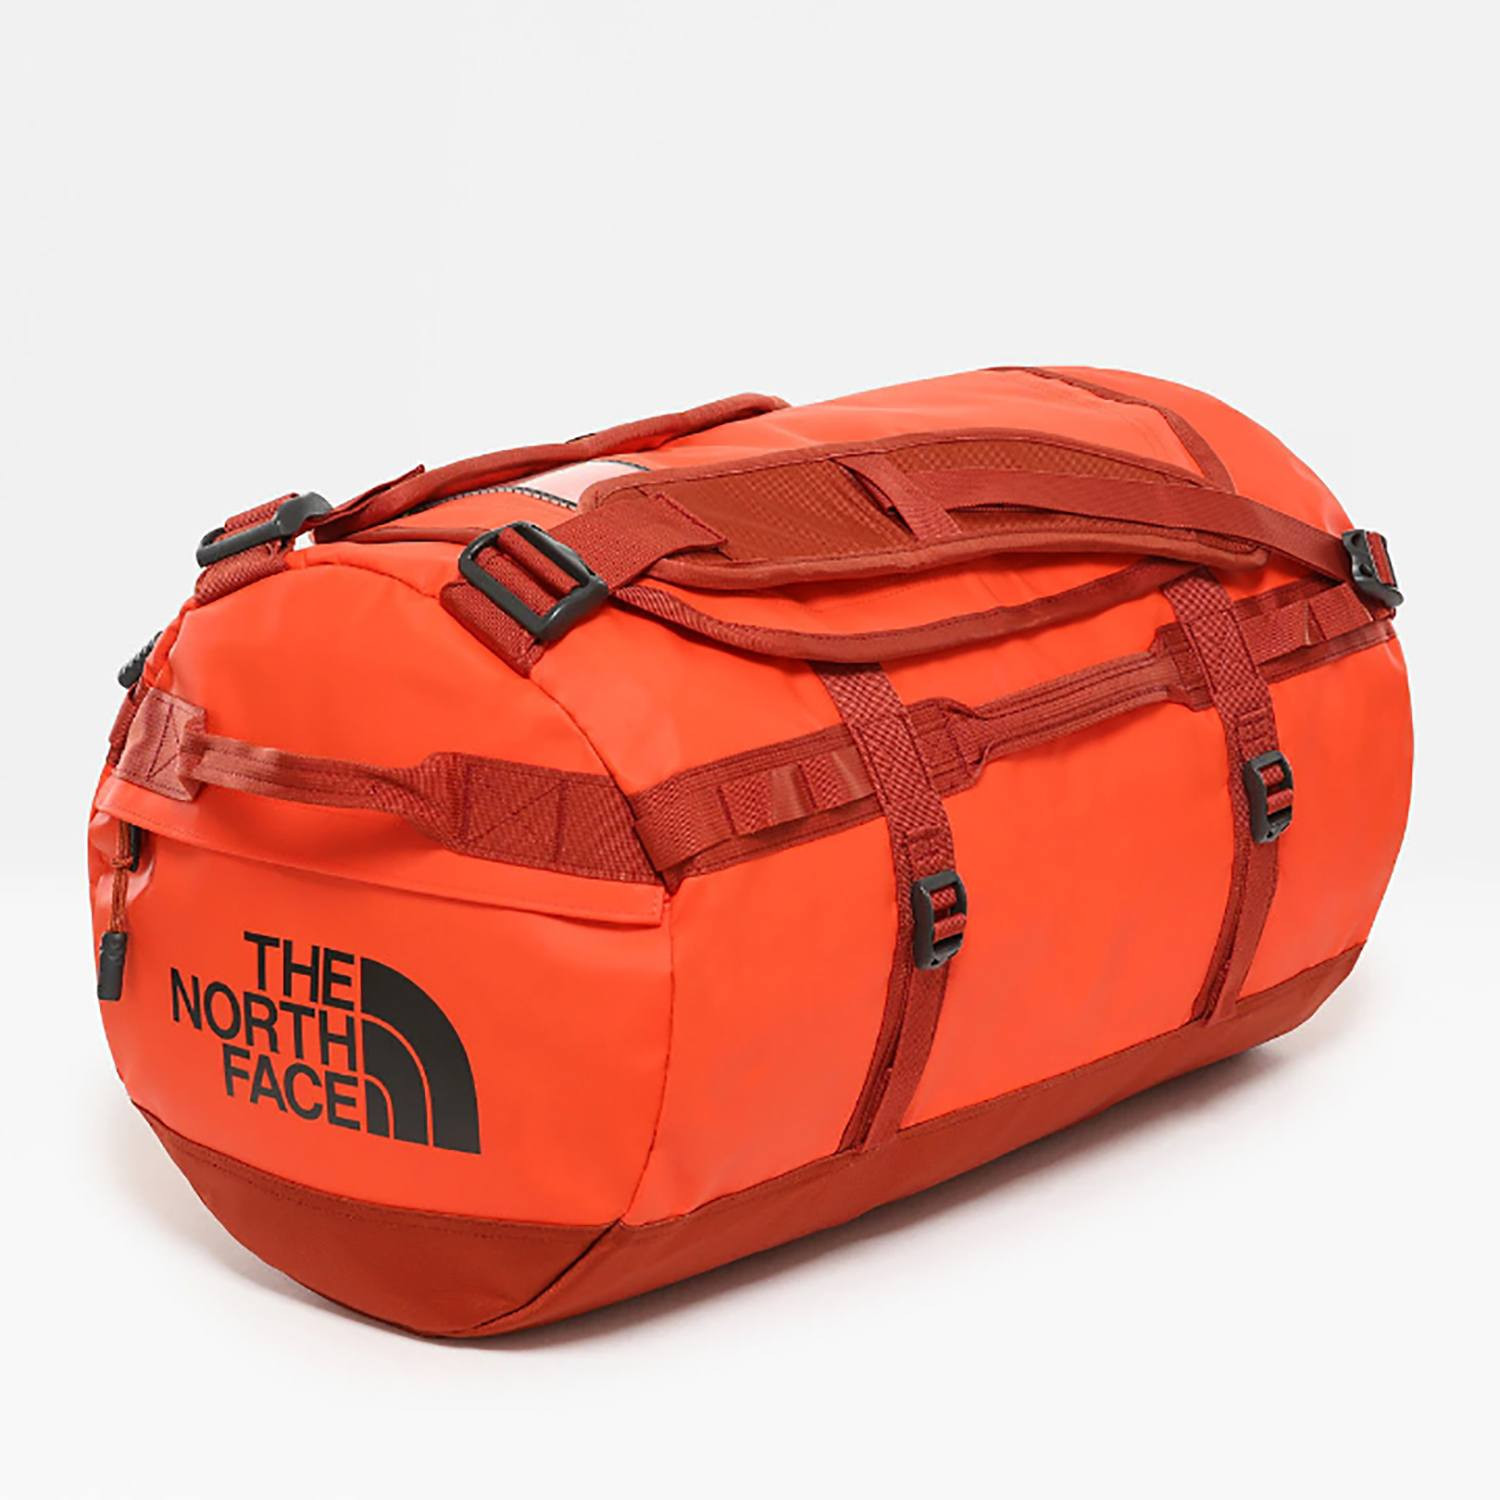 THE NORTH FACE BASE CAMP DUFFEL - S (9000036618_41145)